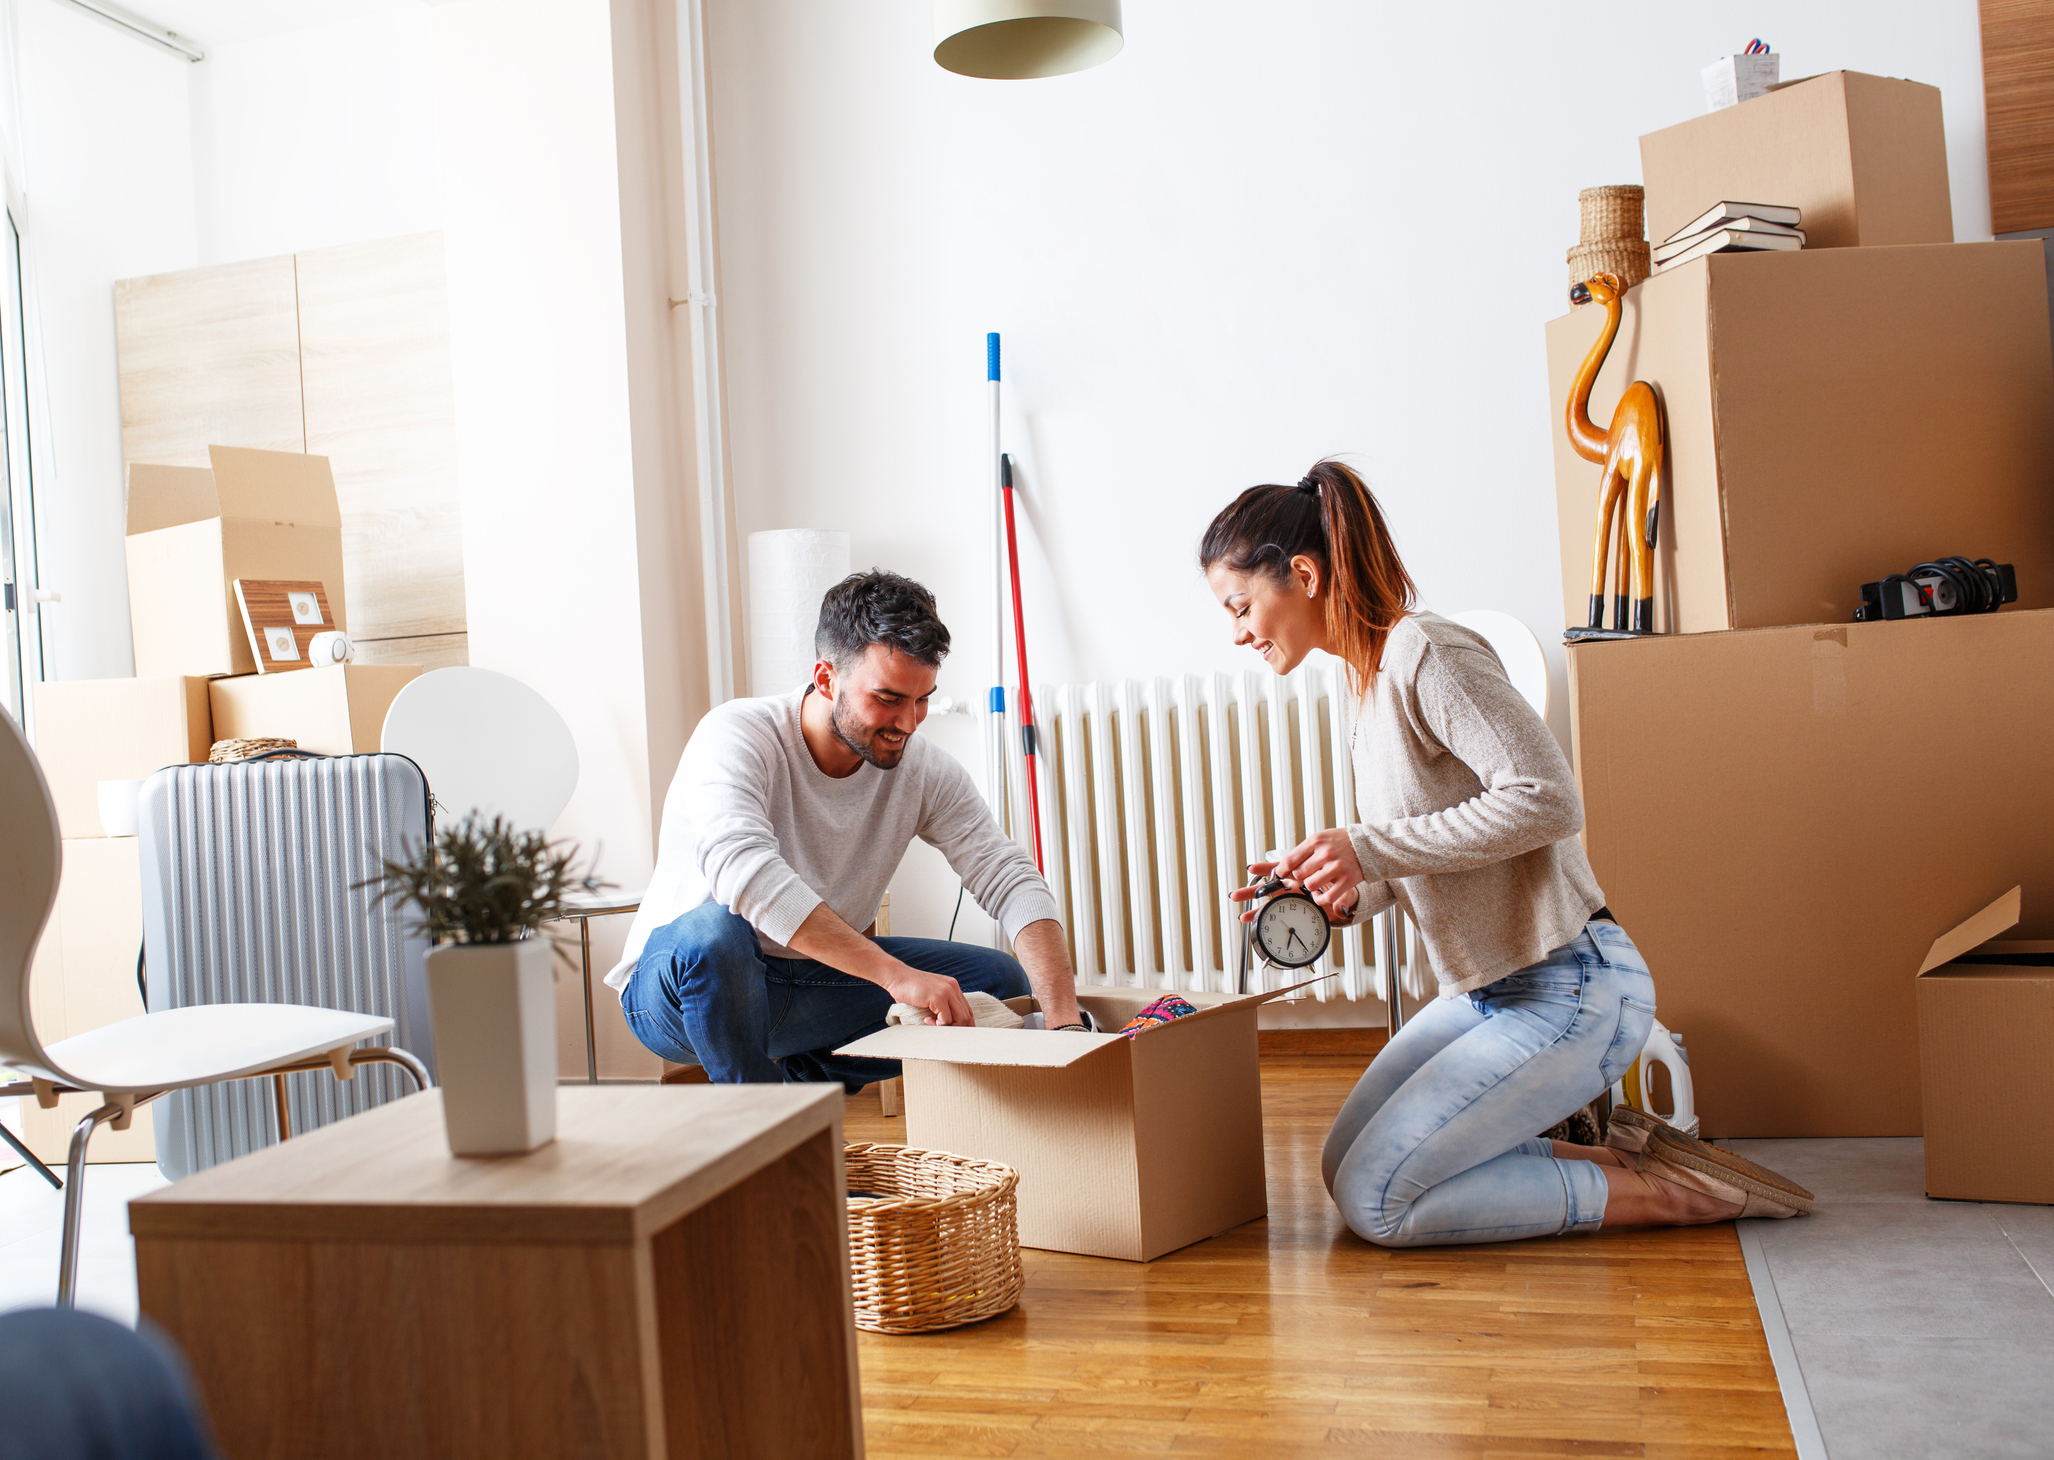 A young couple packing moving boxes in an apartment.